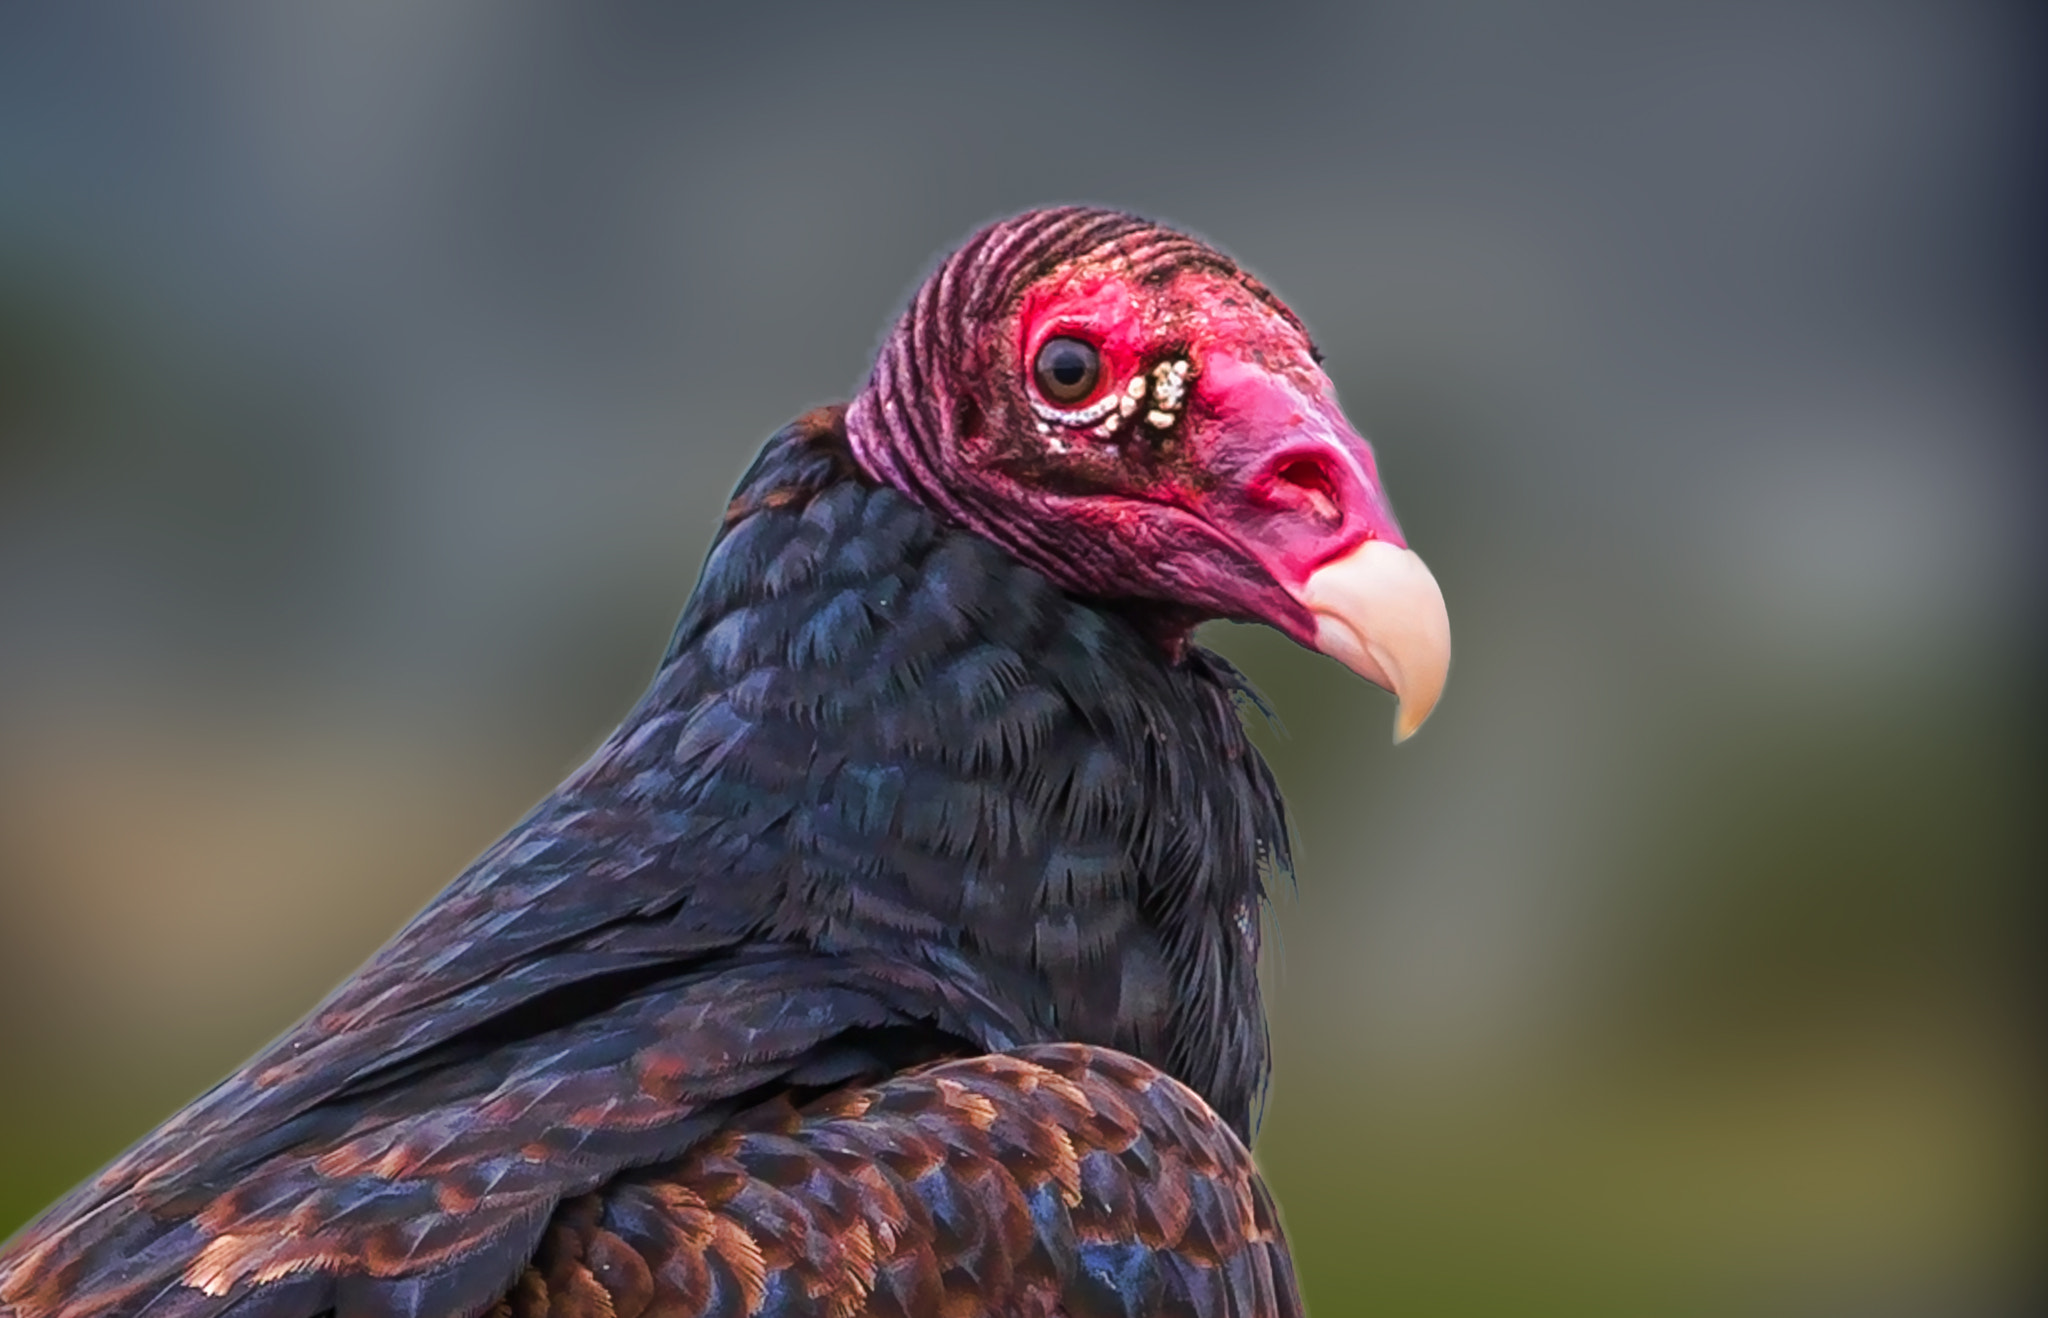 Photograph Turkey Vulture by George Bloise on 500px